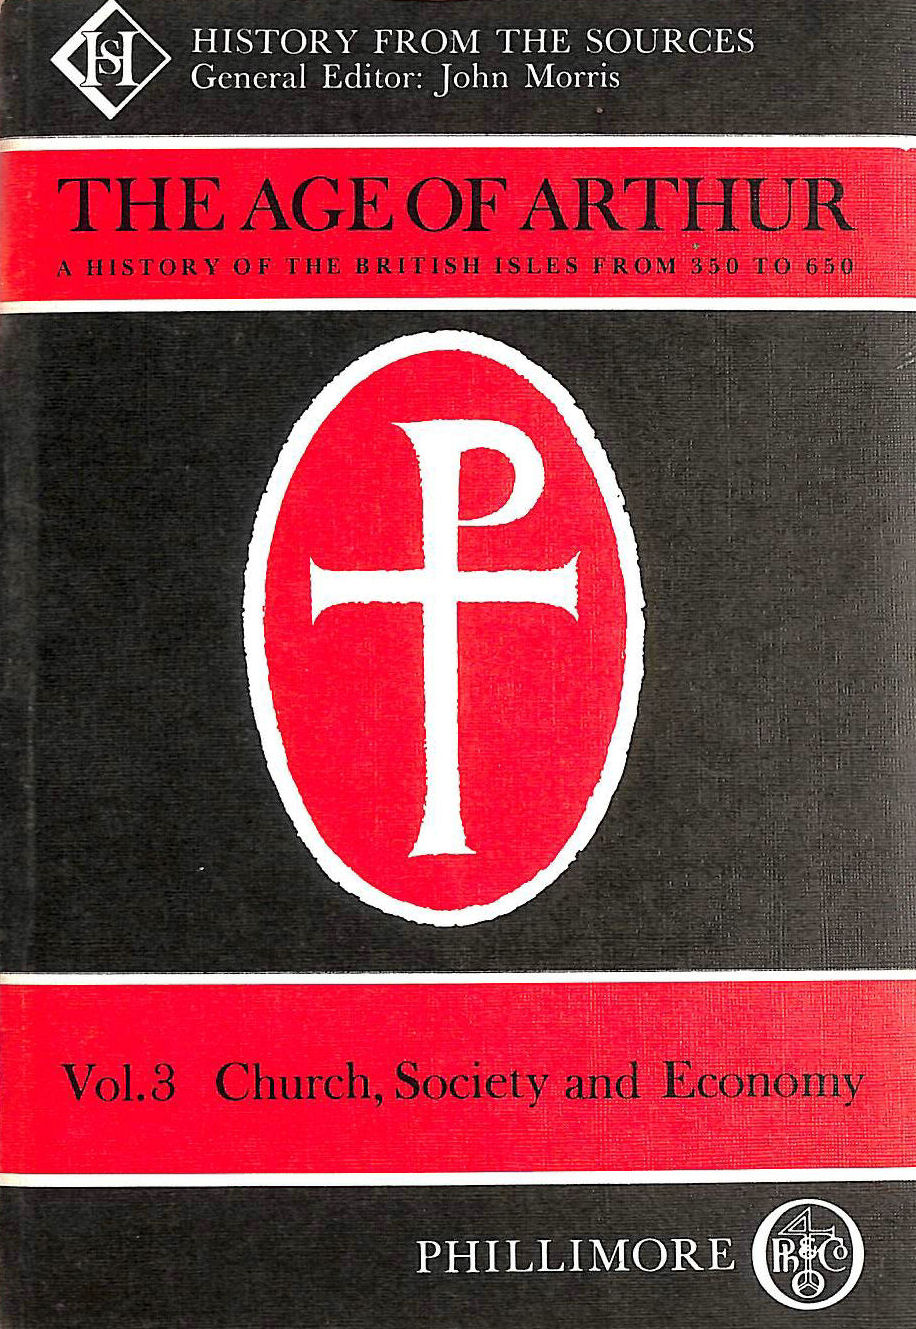 Image for Church. Society and Economy: A History of the British Isles, 350-650: Church, Society and Economy v. 3 (Age of Arthur a History of the British Isles from 350 to 650)